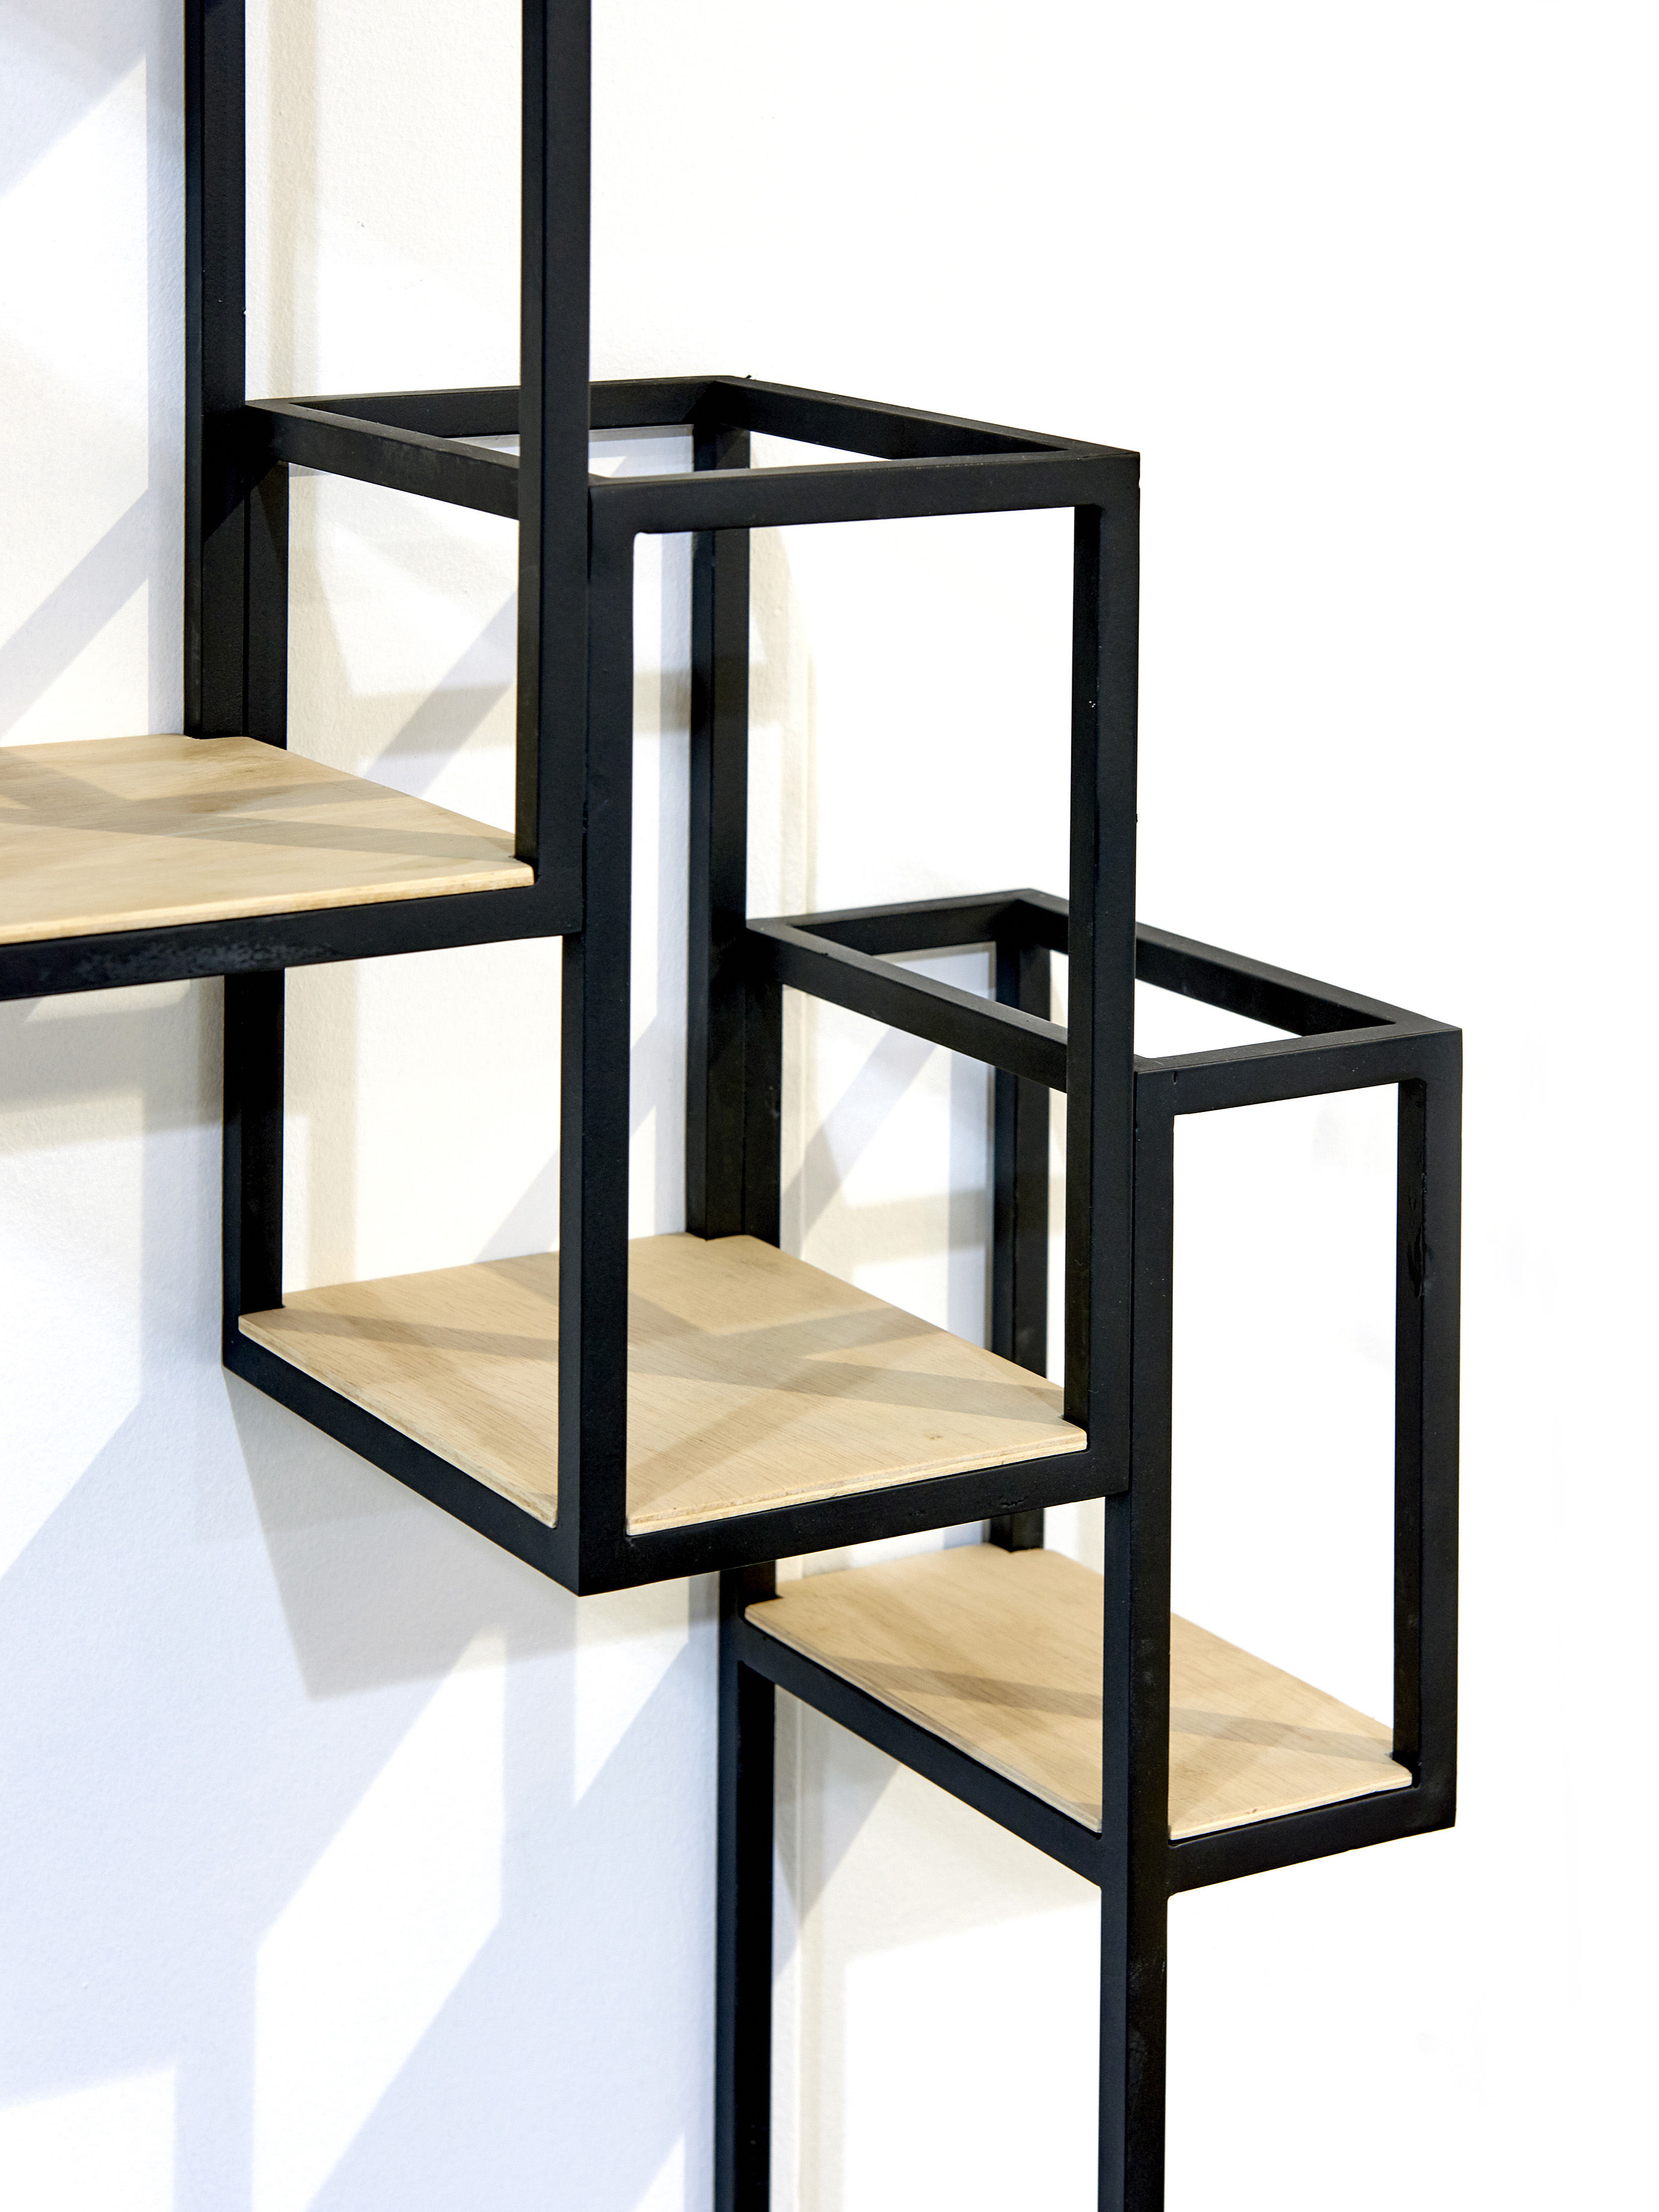 Biblioth que jointed murale 152 x 115 cm noir bois for Etagere pour bibliotheque murale